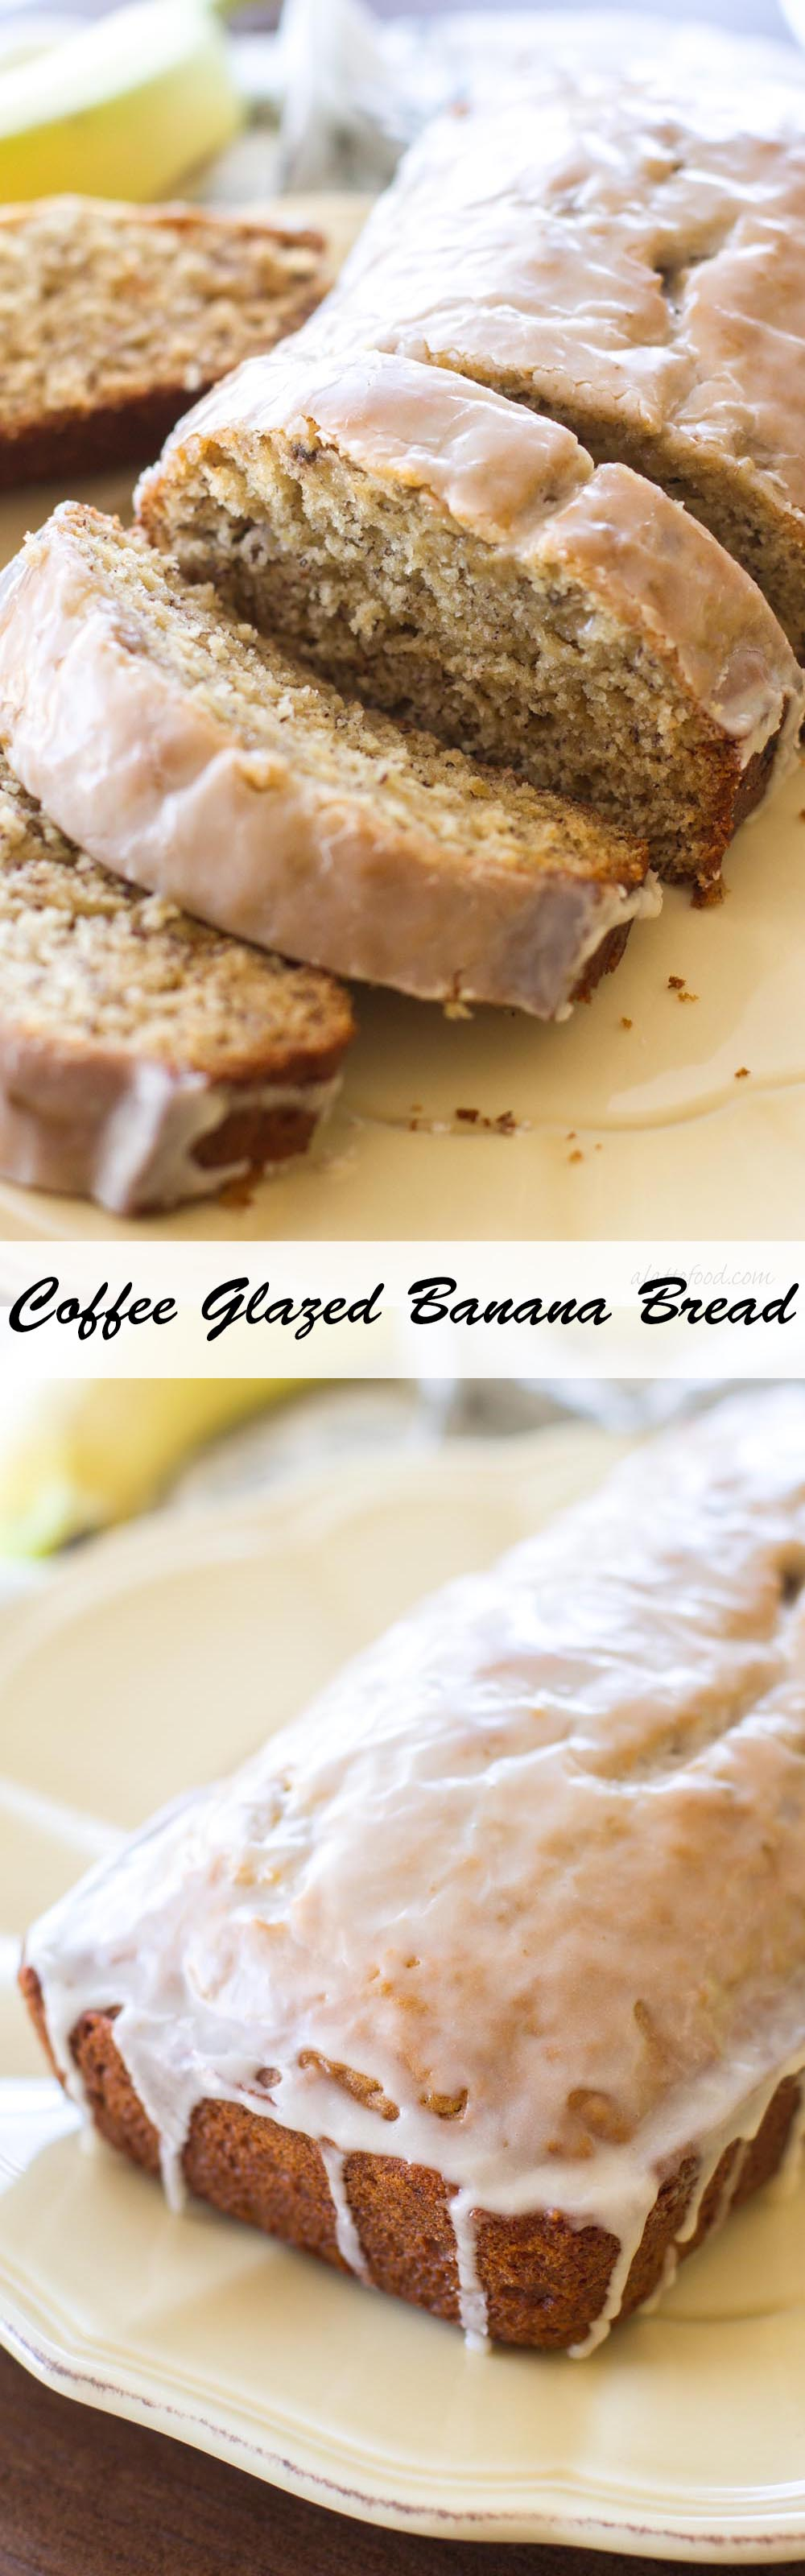 This banana bread recipe is topped with a sweet coffee glaze to combine your morning breakfast and cup of coffee into one sweet treat!